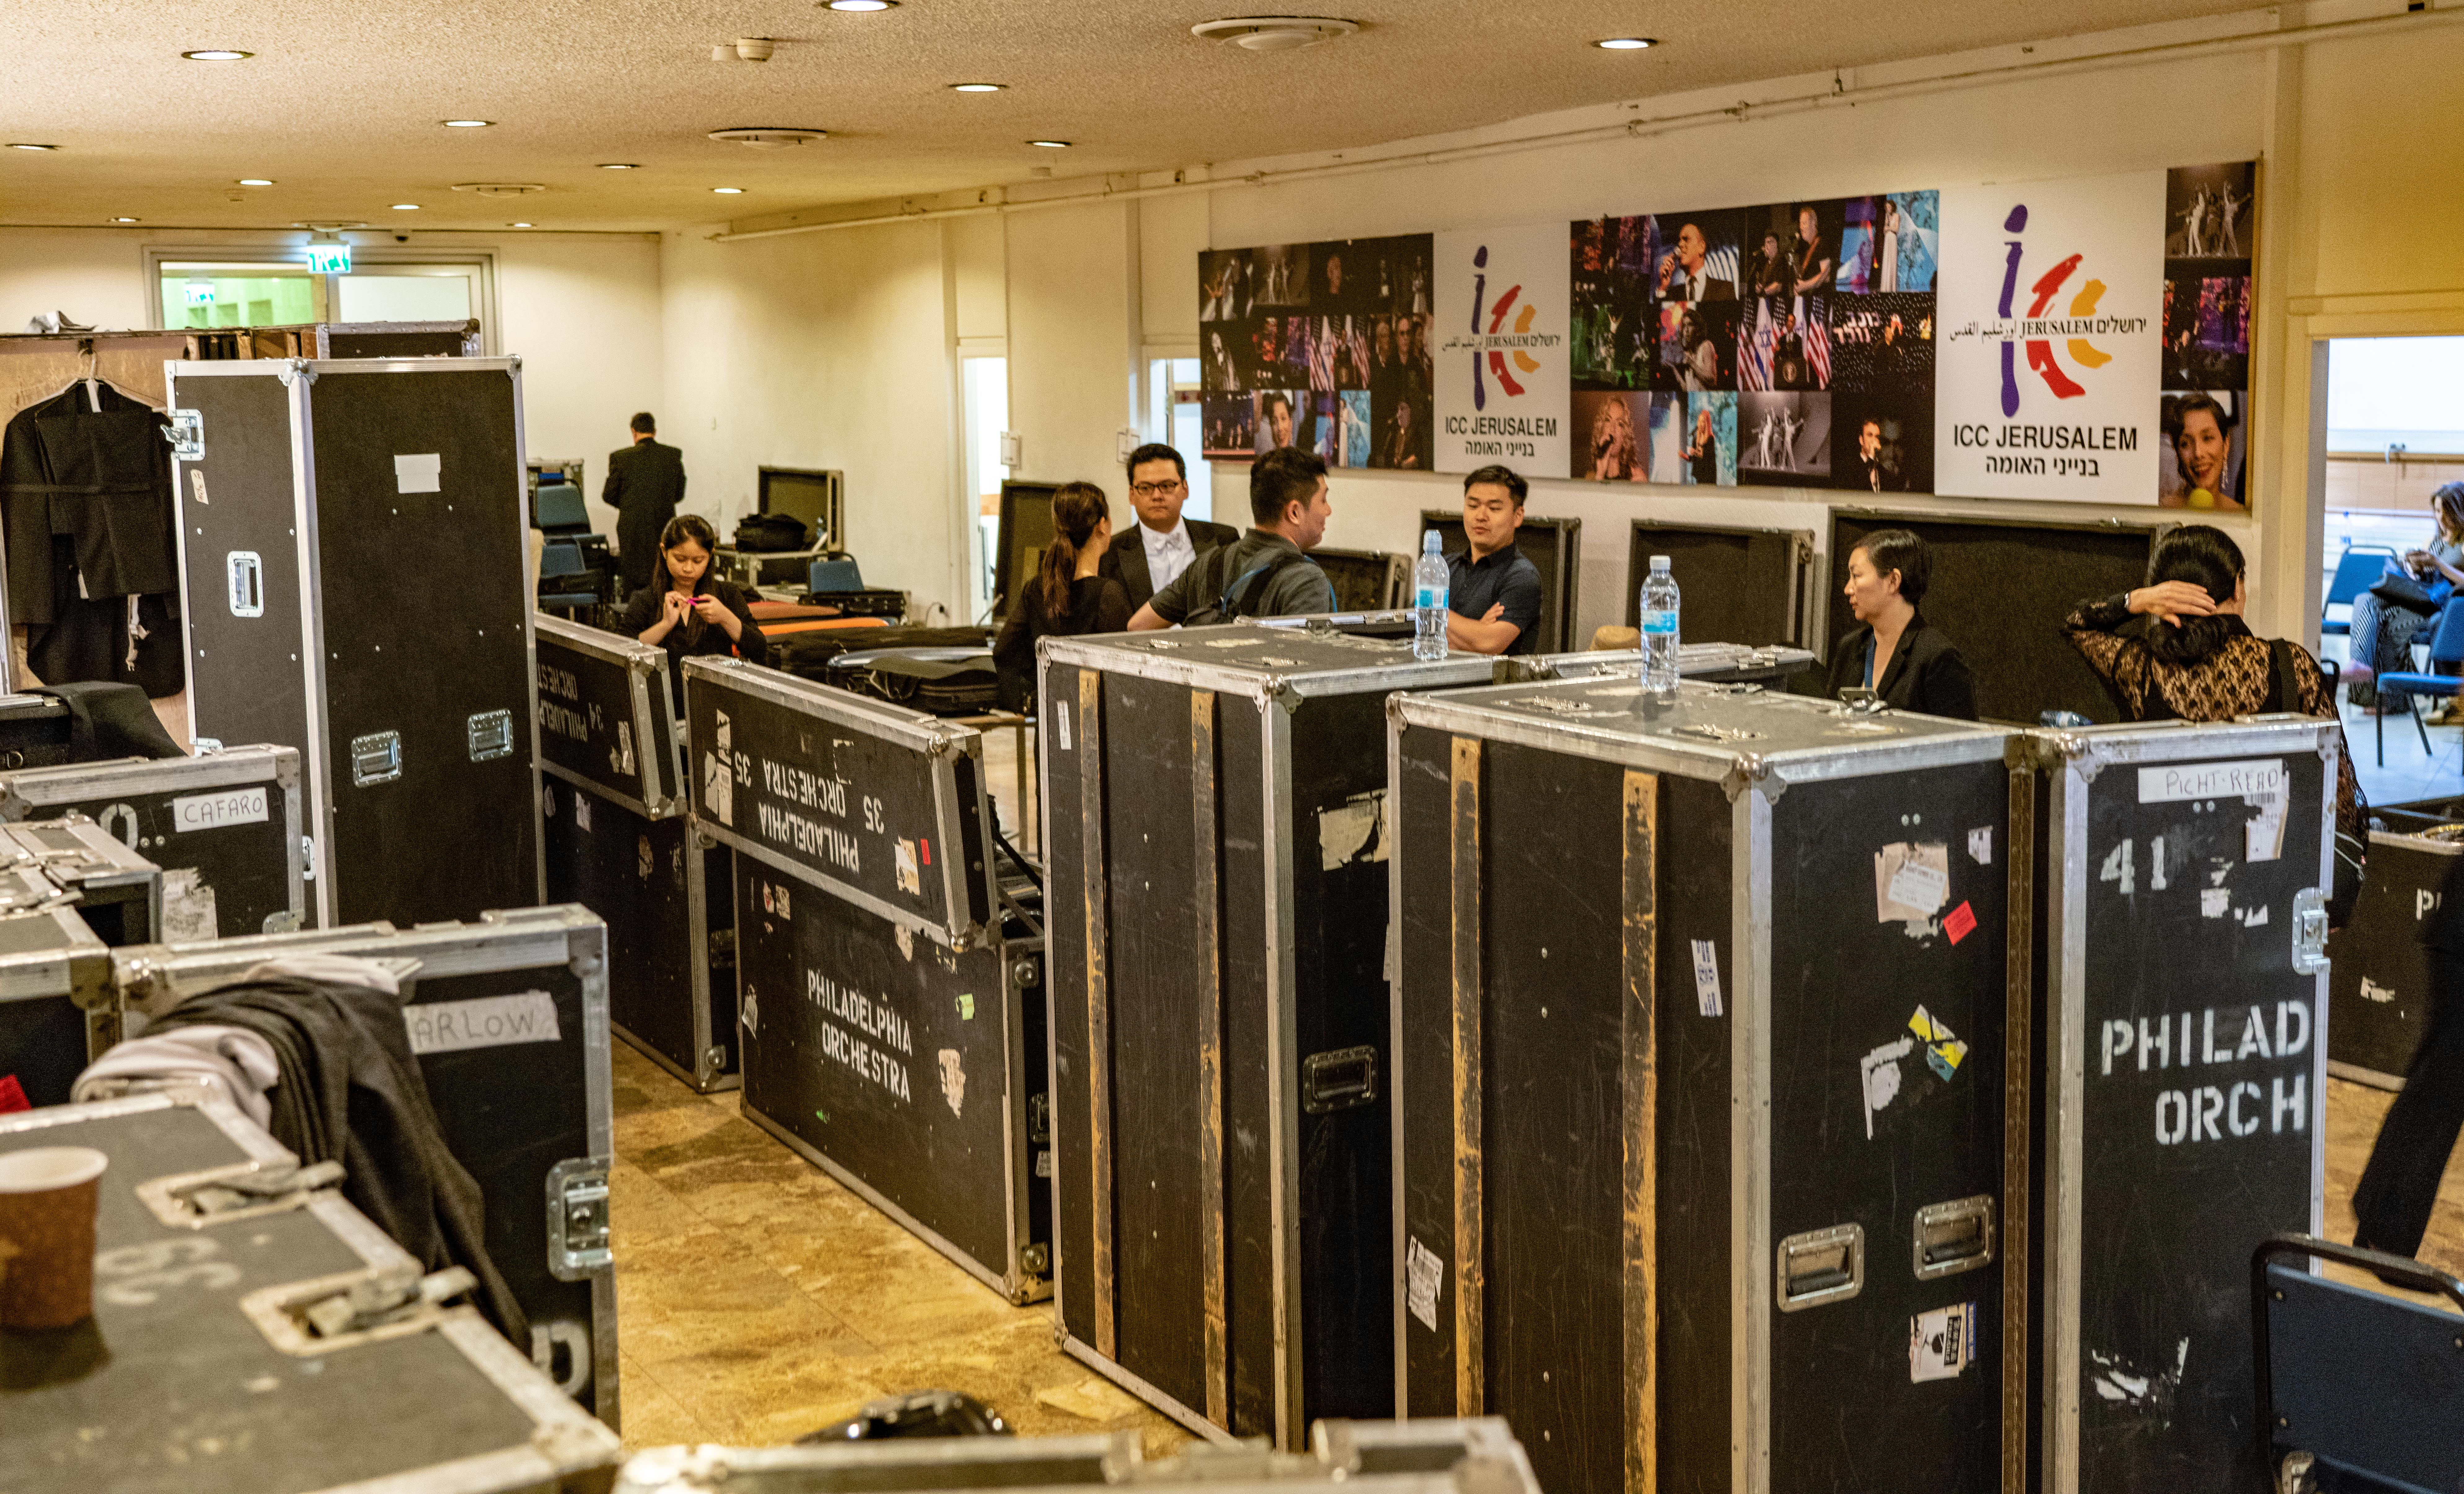 Behind the scenes at the ICC Center Jerusalem, where the Philadelphia Orchestra played the final concert of its 2018 Tour of Europe and Israel.